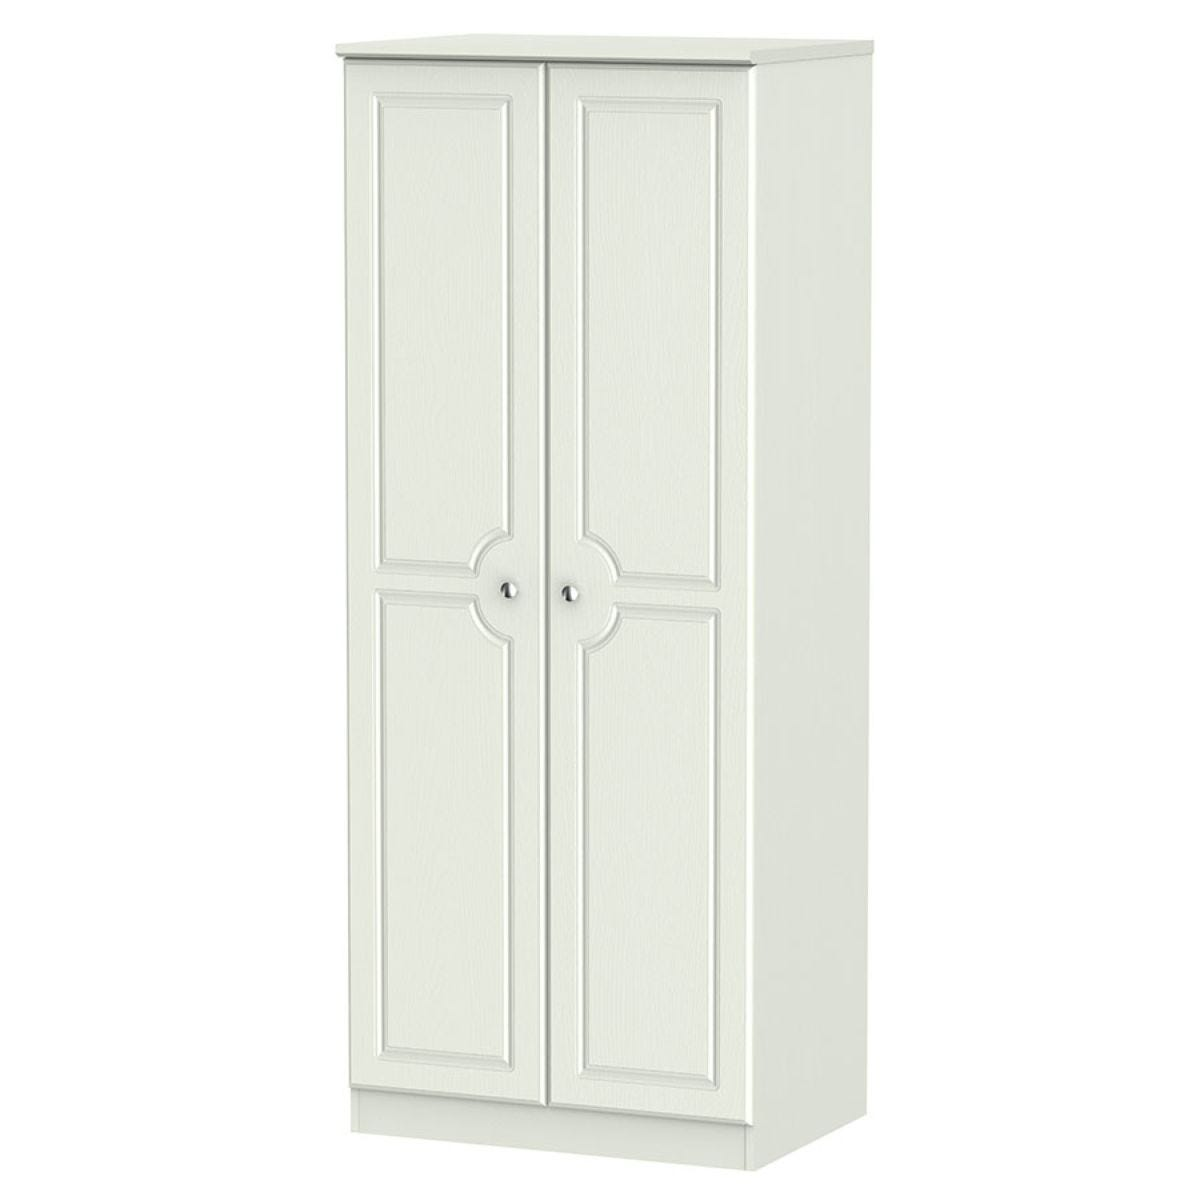 Montego 2-Door Wardrobe - Ash Grey